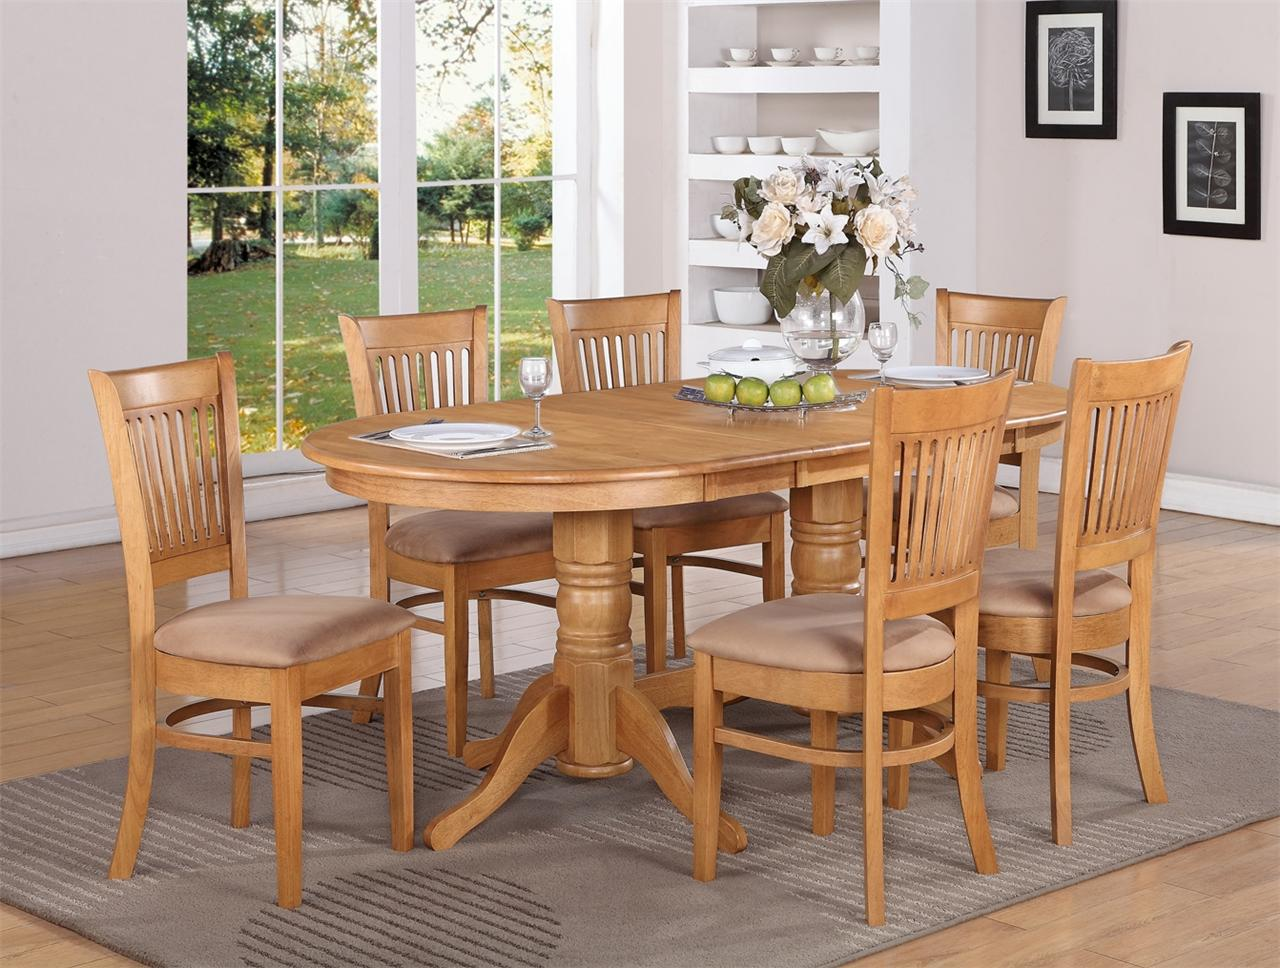 oak furniture dining table and chairs. taunton dining set